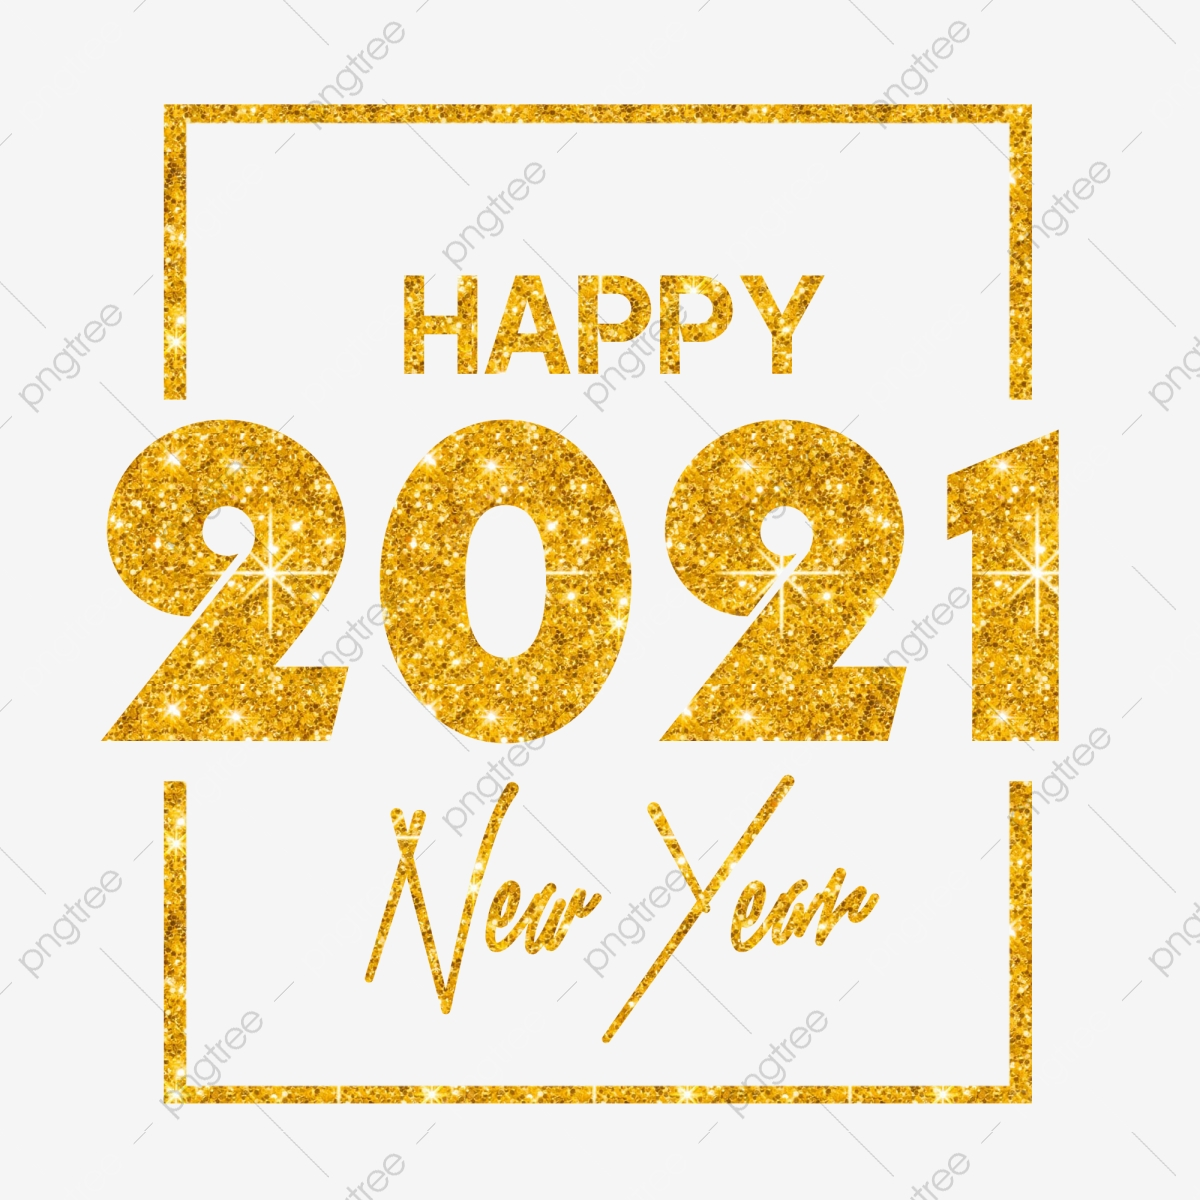 happy new year png images vector and psd files free download on pngtree https pngtree com freepng happy new year 2021 5485479 html